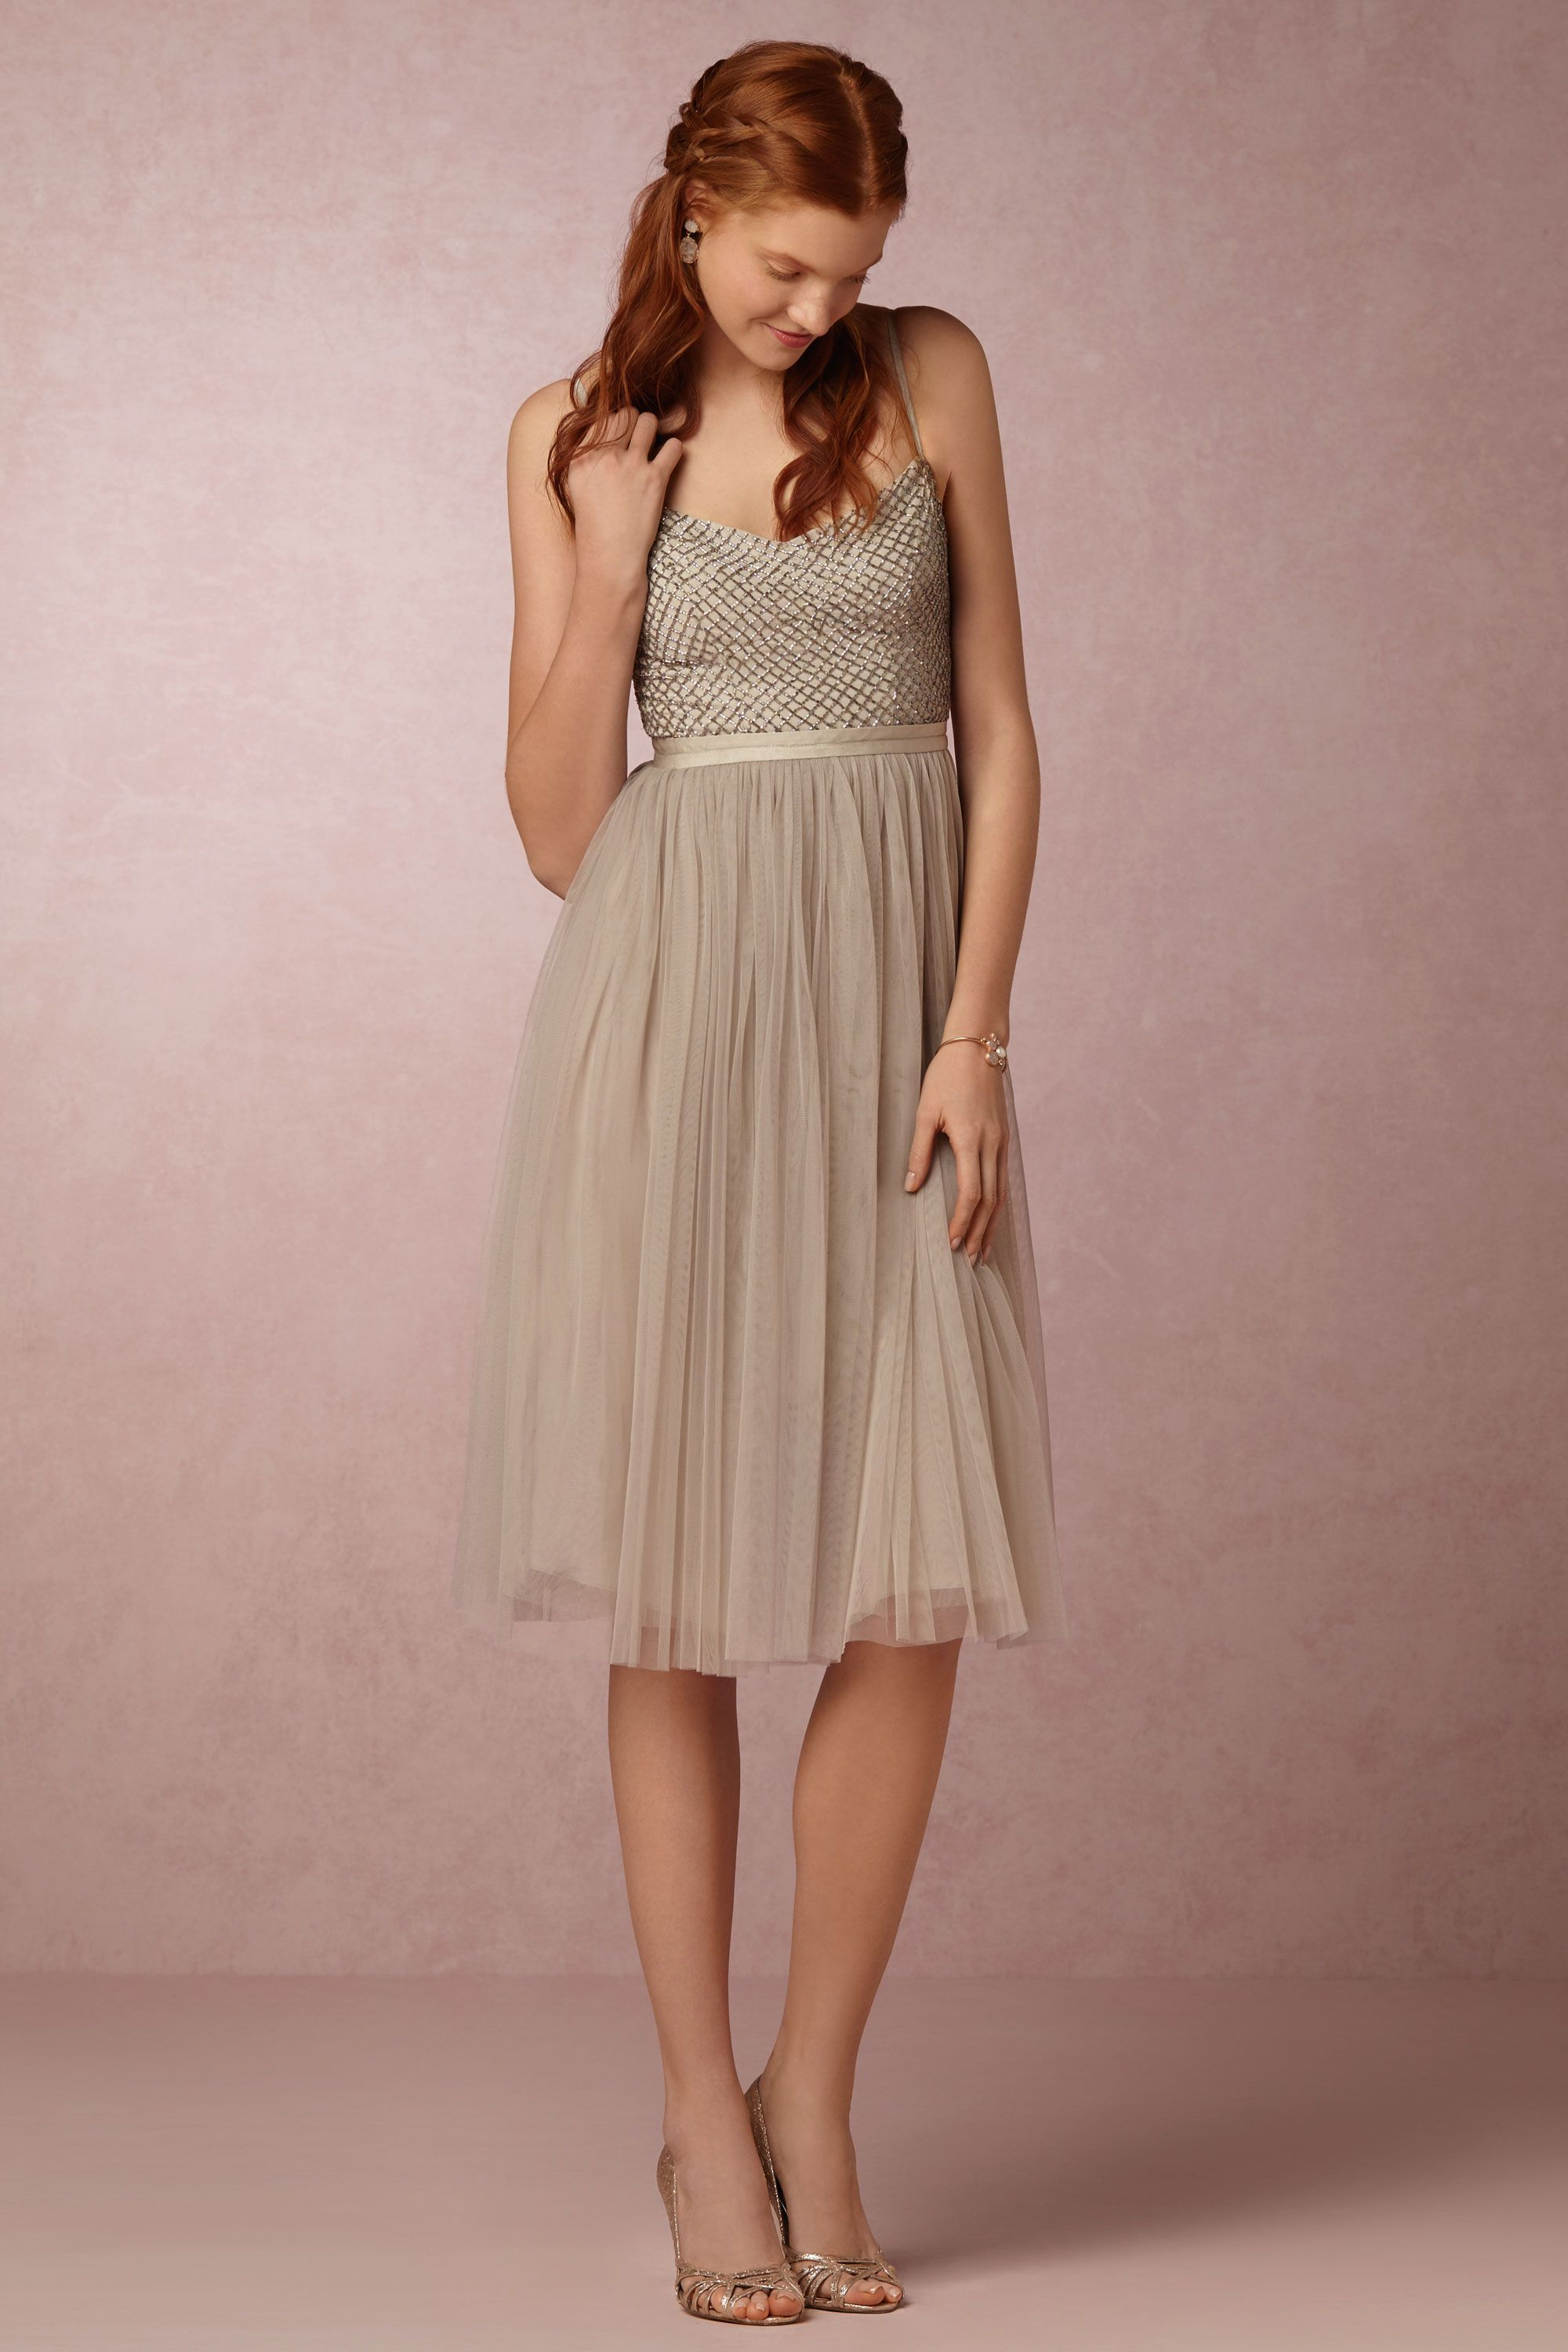 Coppelia Dress from @BHLDN - totes adorbs in Dusty Pink